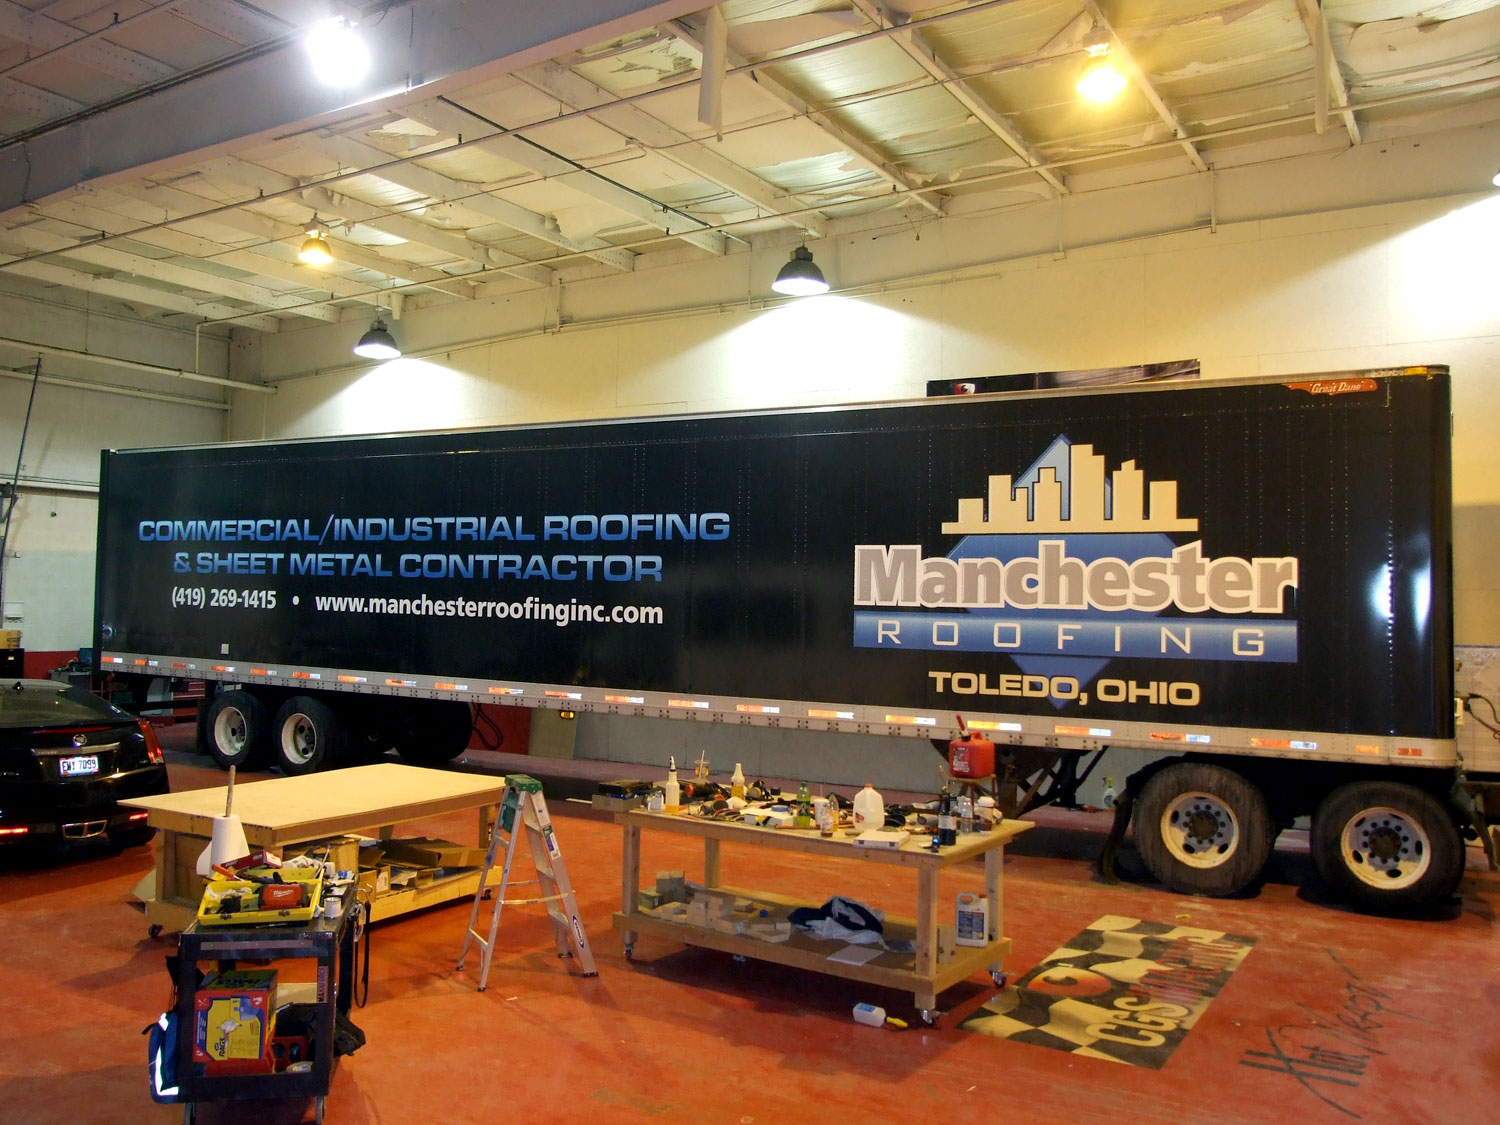 Manchester Roofing Trailer Wrap Graphics